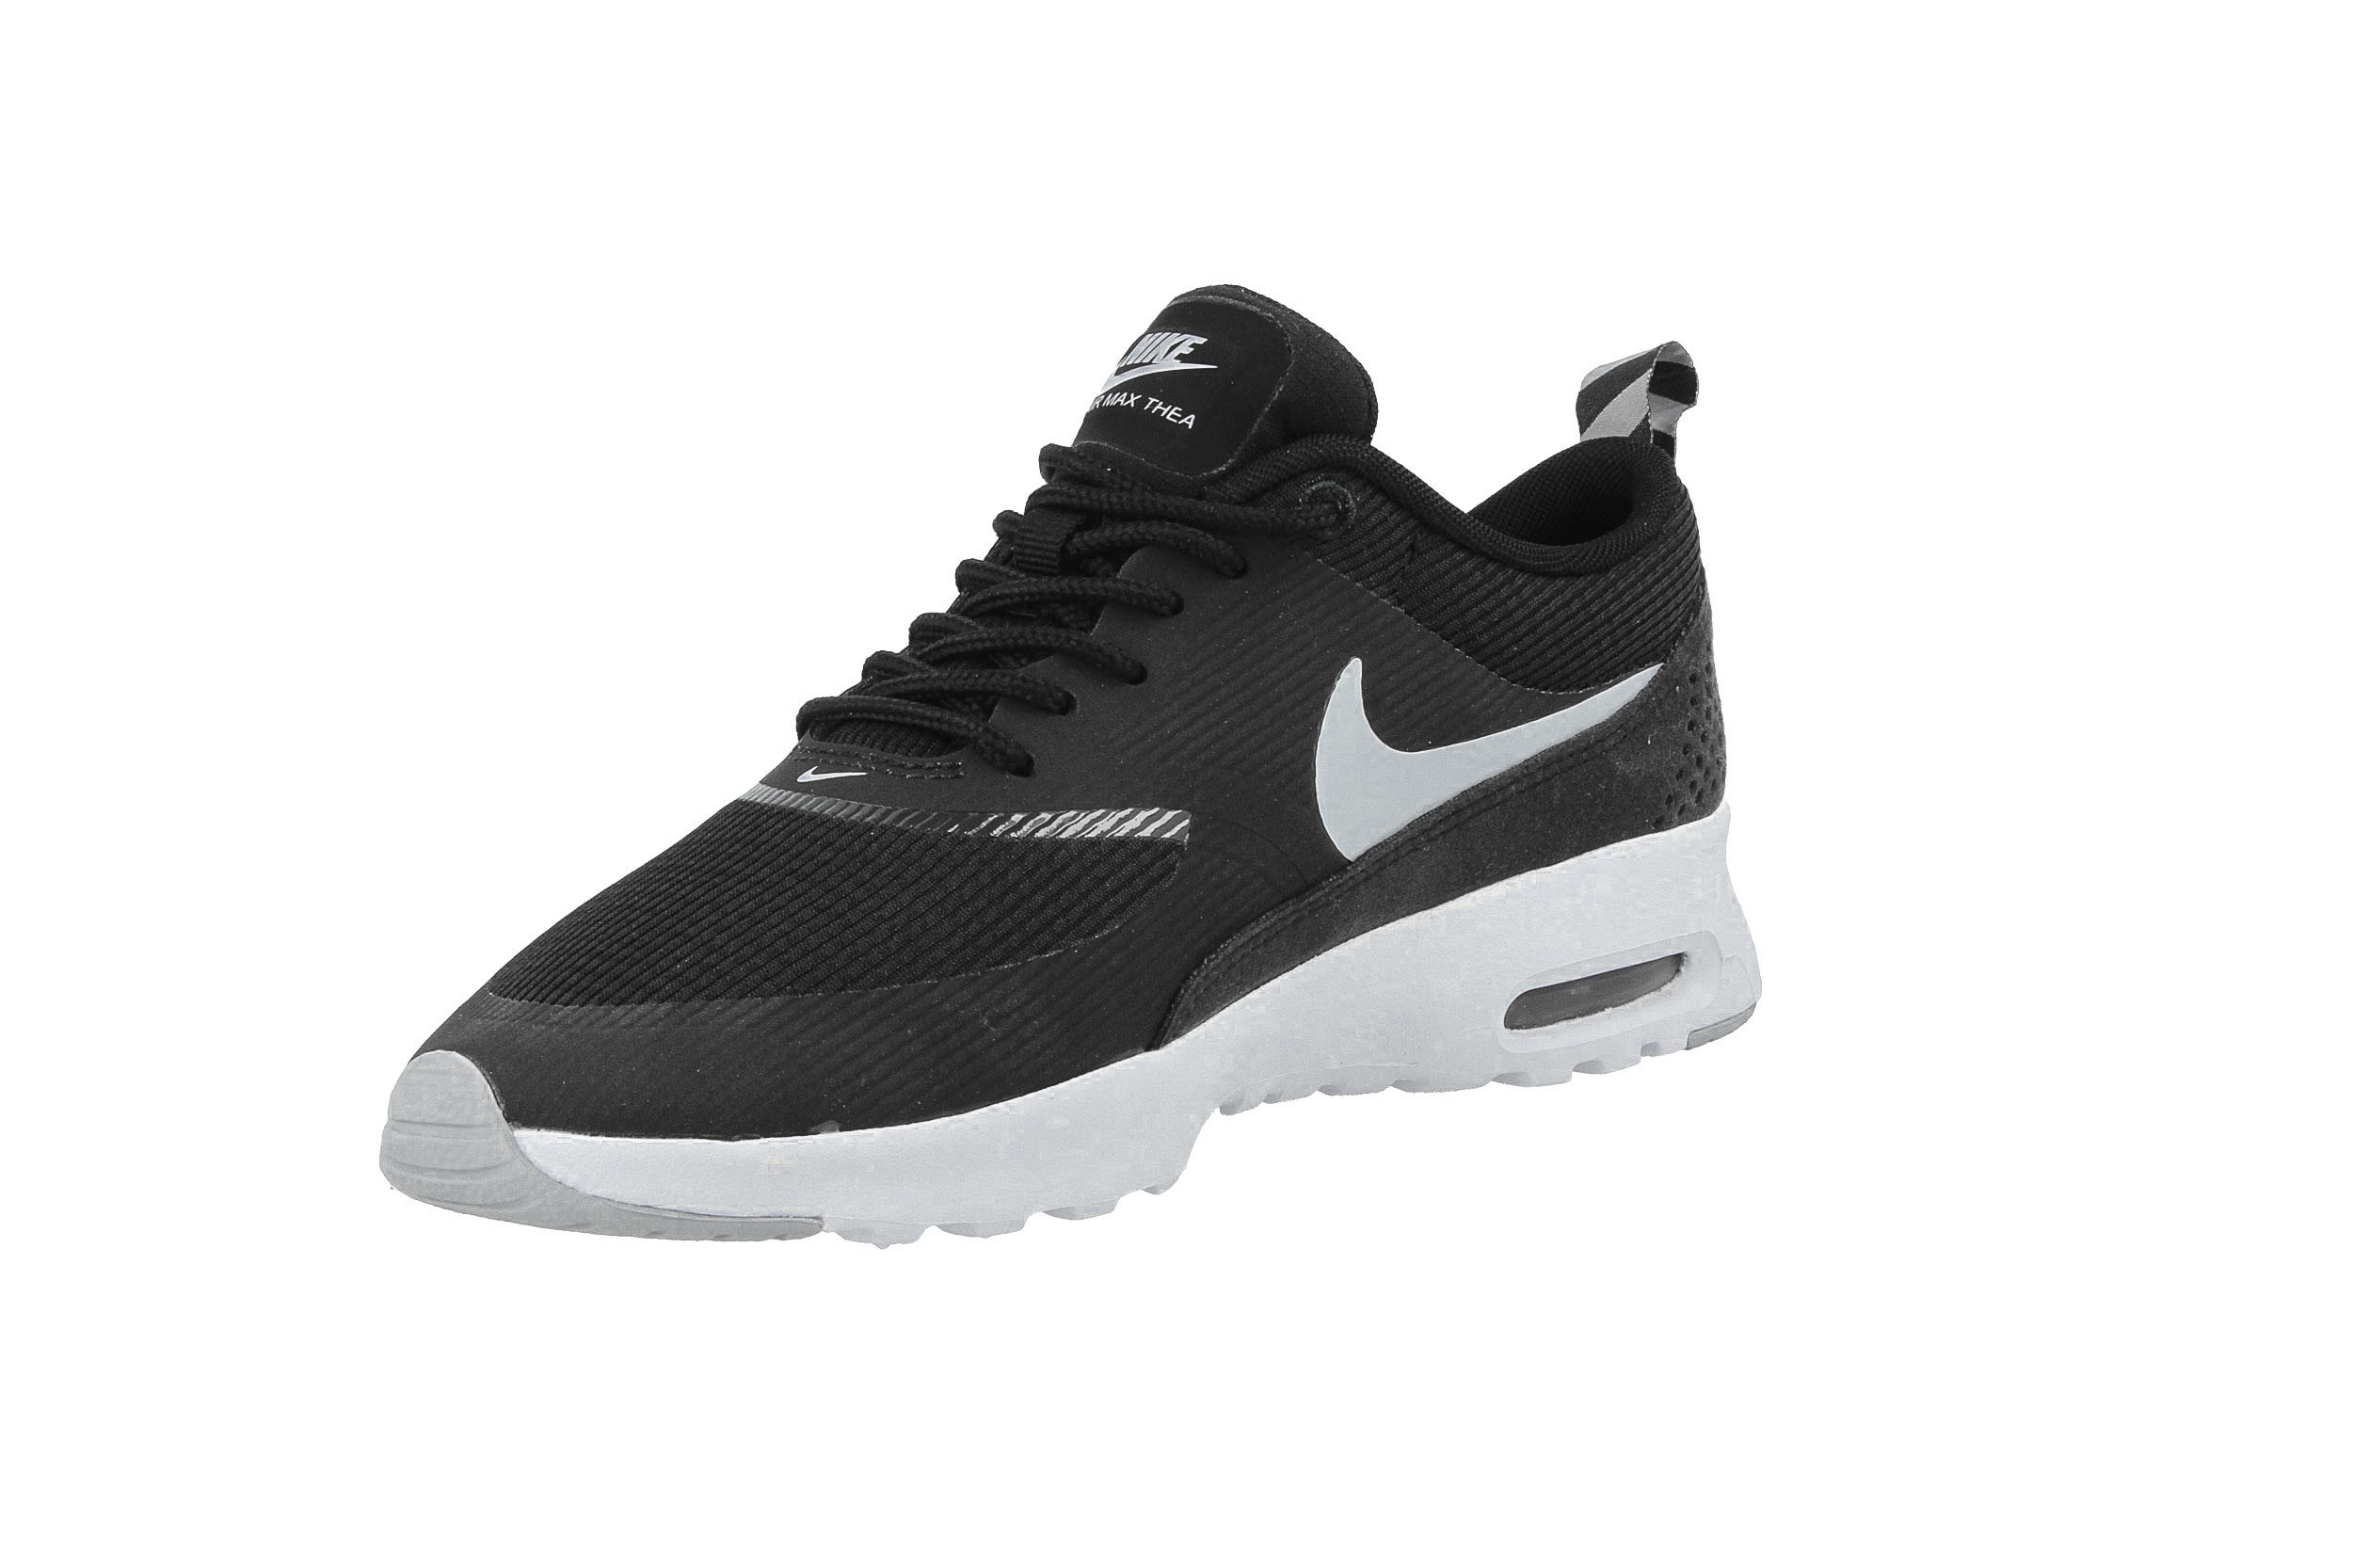 WMNS Nike Air Max Thea Black wolf Grey white 599409 007 for